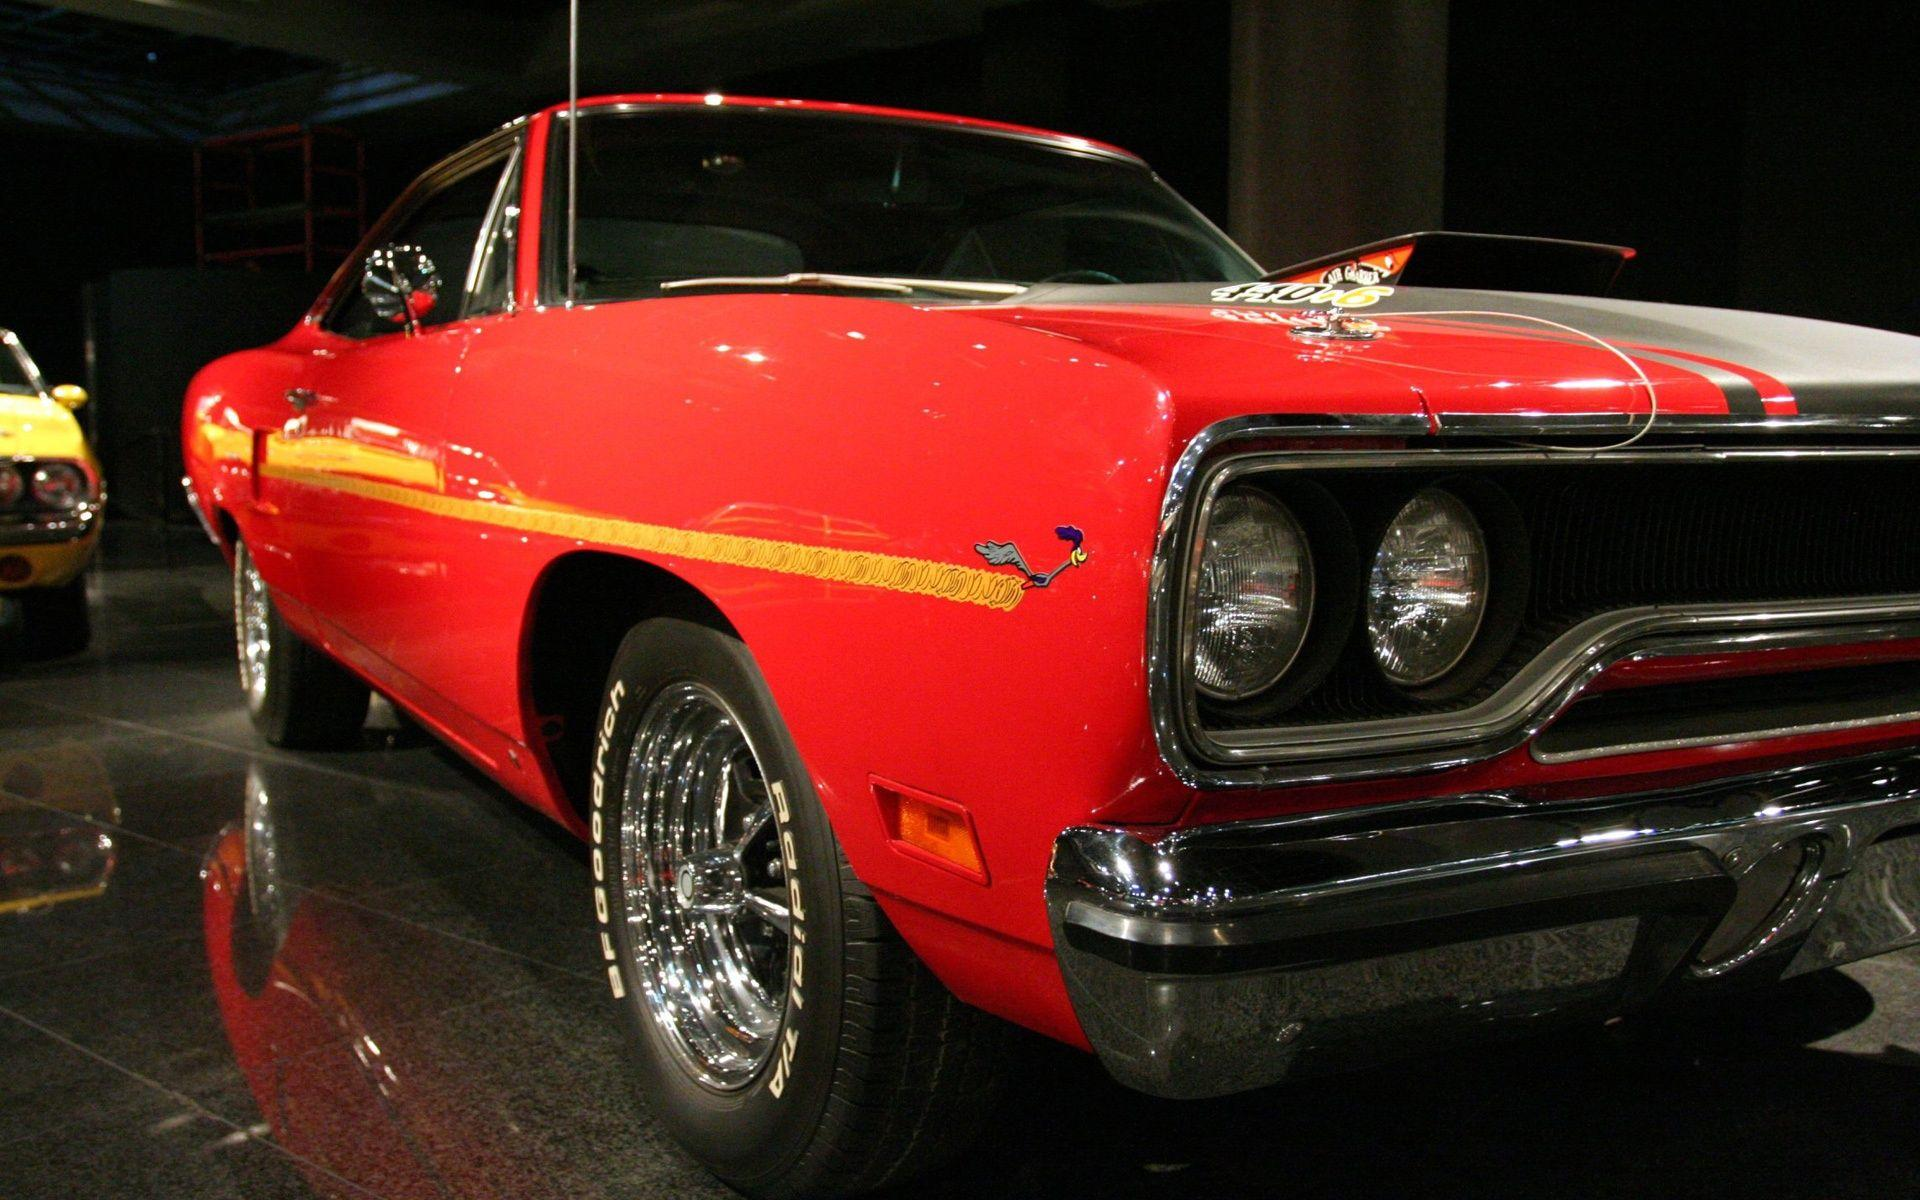 1970 Plymouth Roadrunner Wallpaper - WallpaperSafari